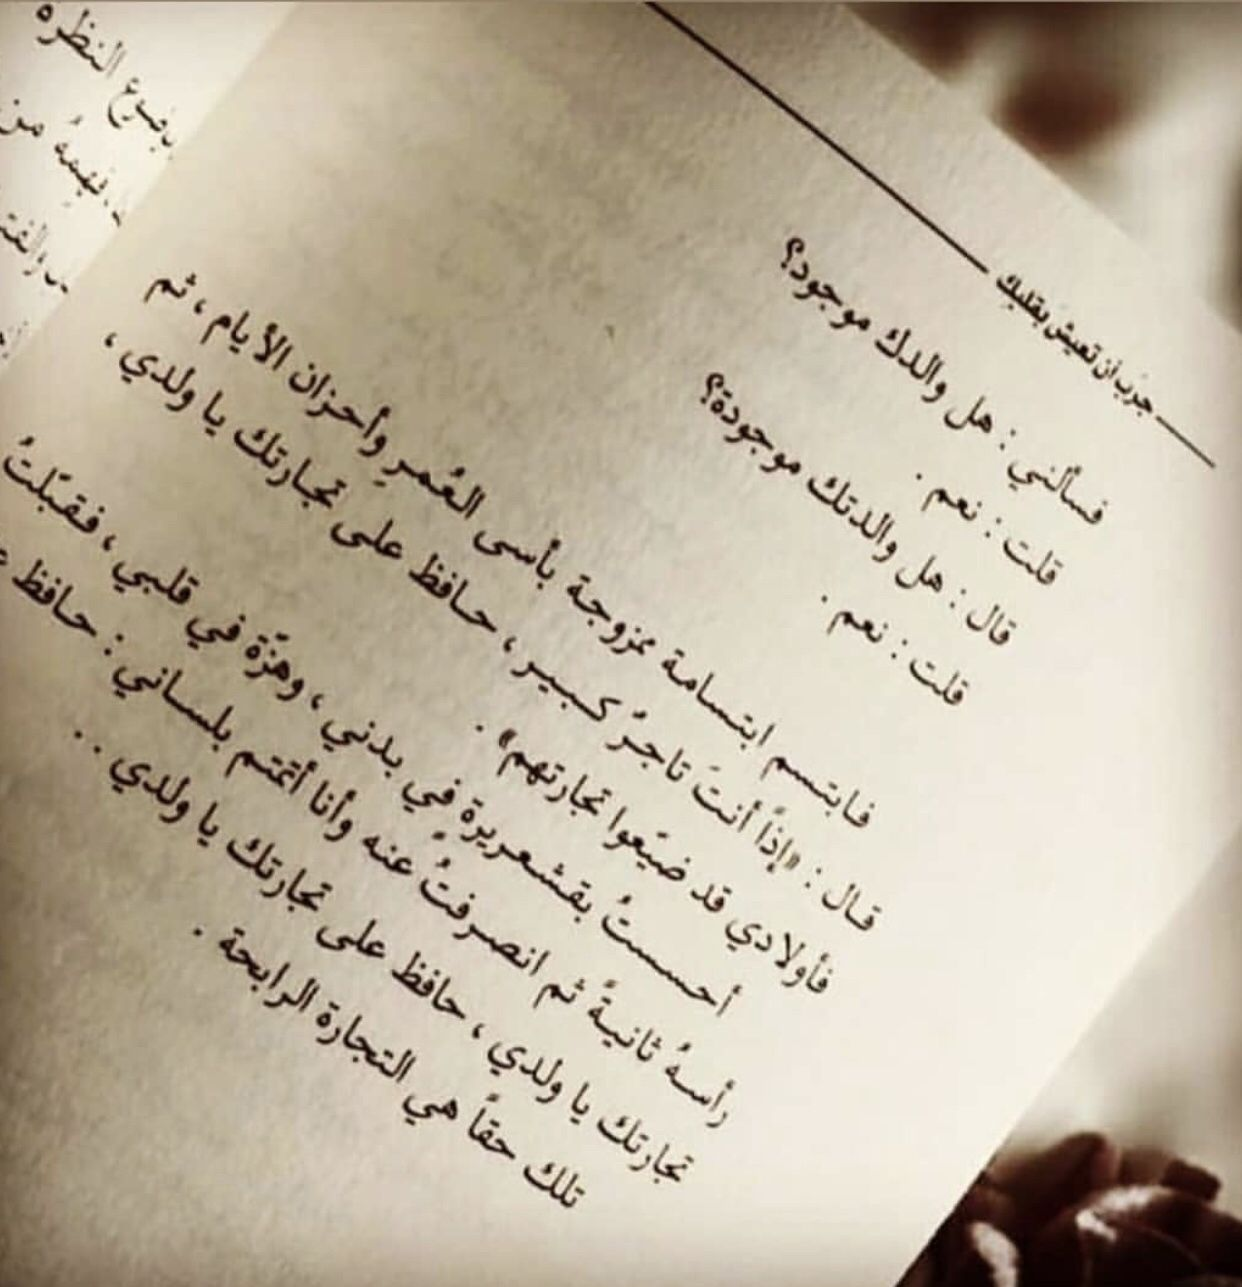 Pin By H On شو بعرفني Maybe Literature Sheet Music